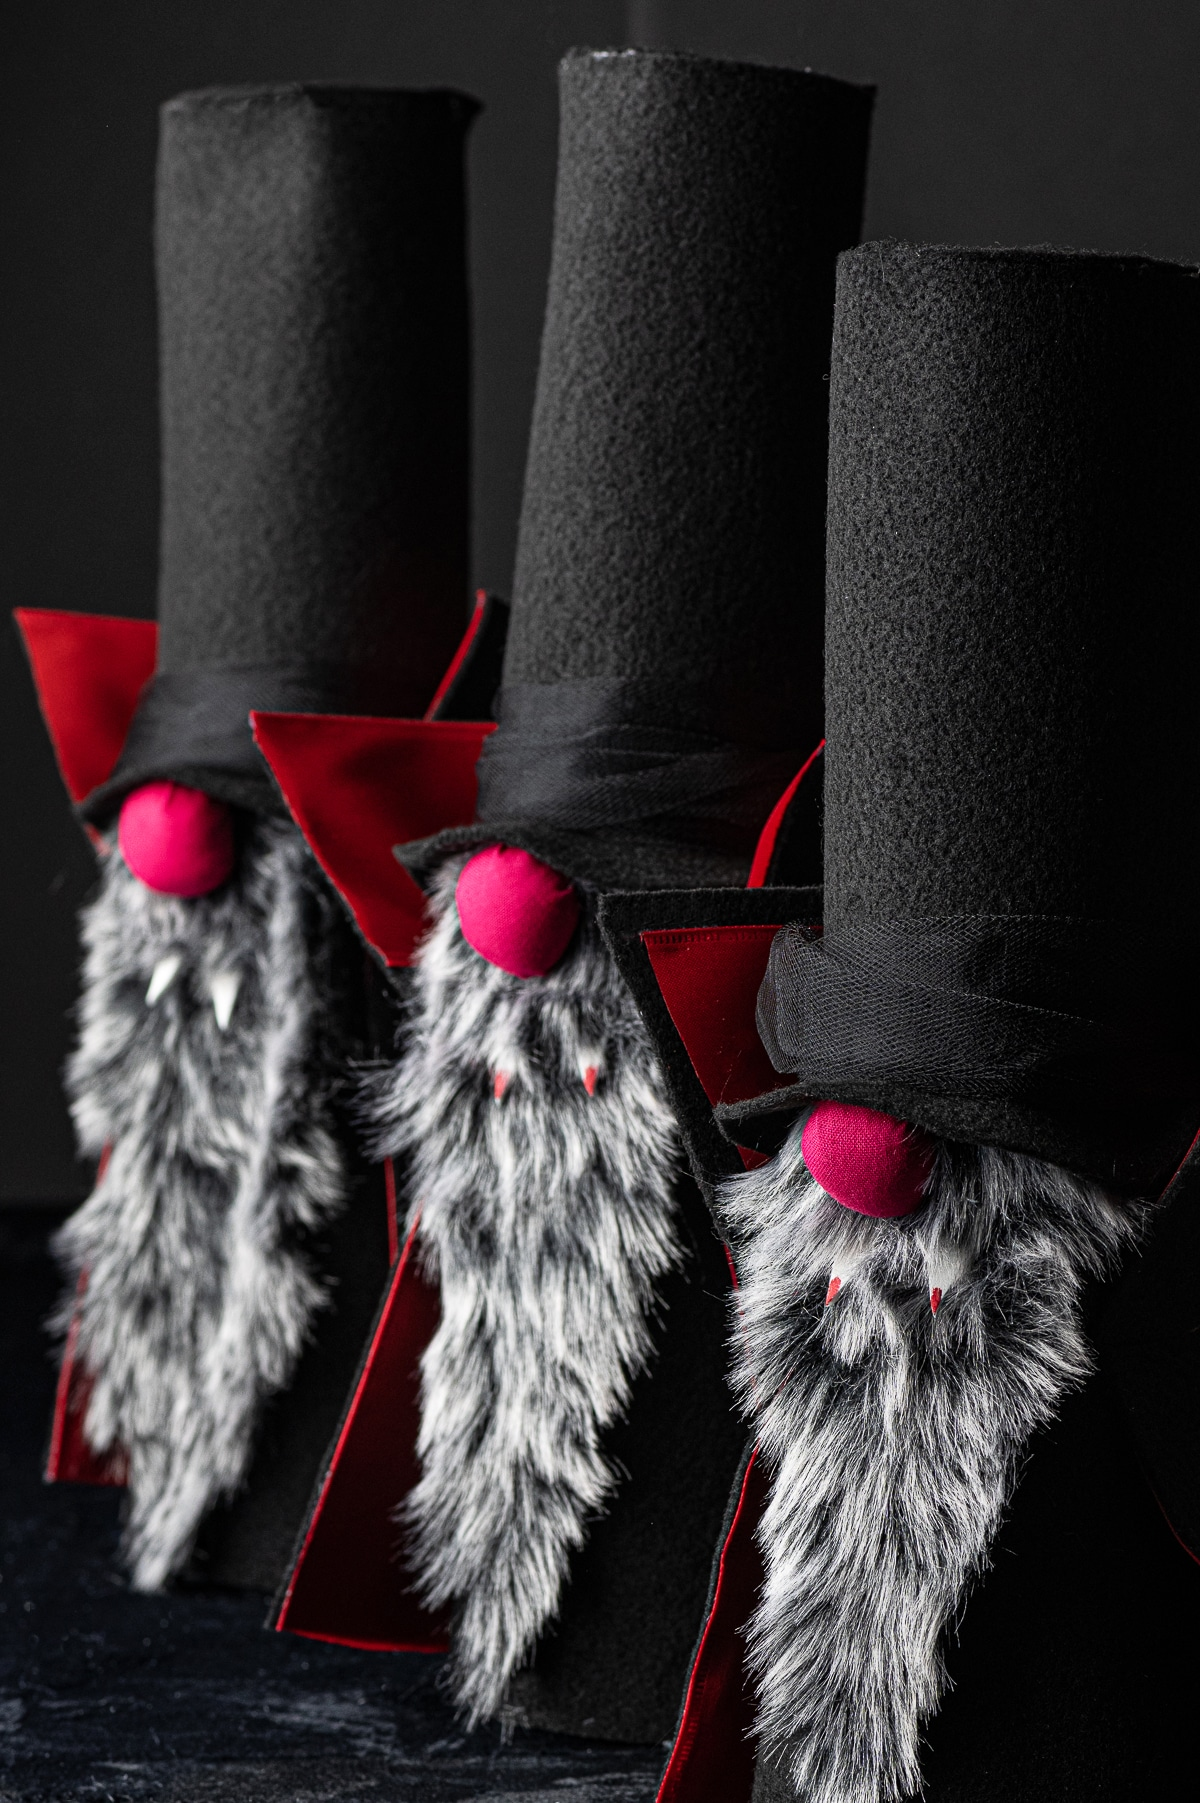 Three felt halloween vampire gnomes with tall black hats, and red noses, grey beards and red fangs against a dark black background